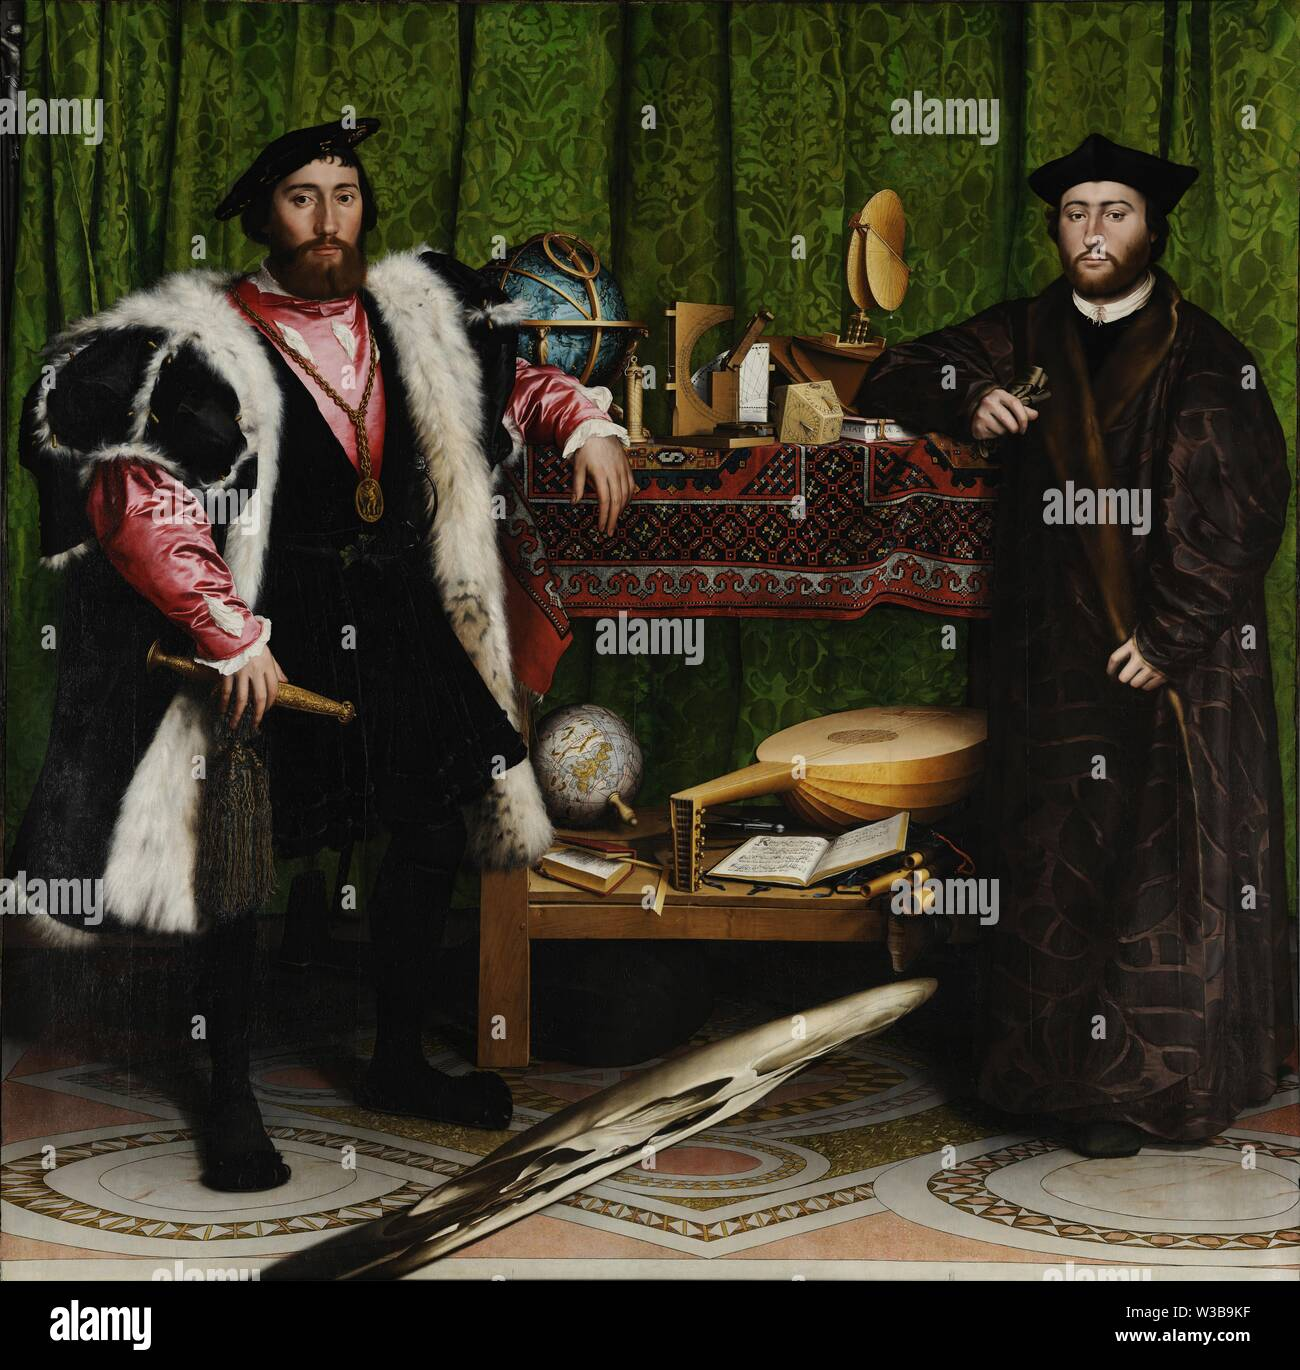 The Ambassadors (1533) painting by Hans Holbein the Younger - Very high resolution and quality image Stock Photo